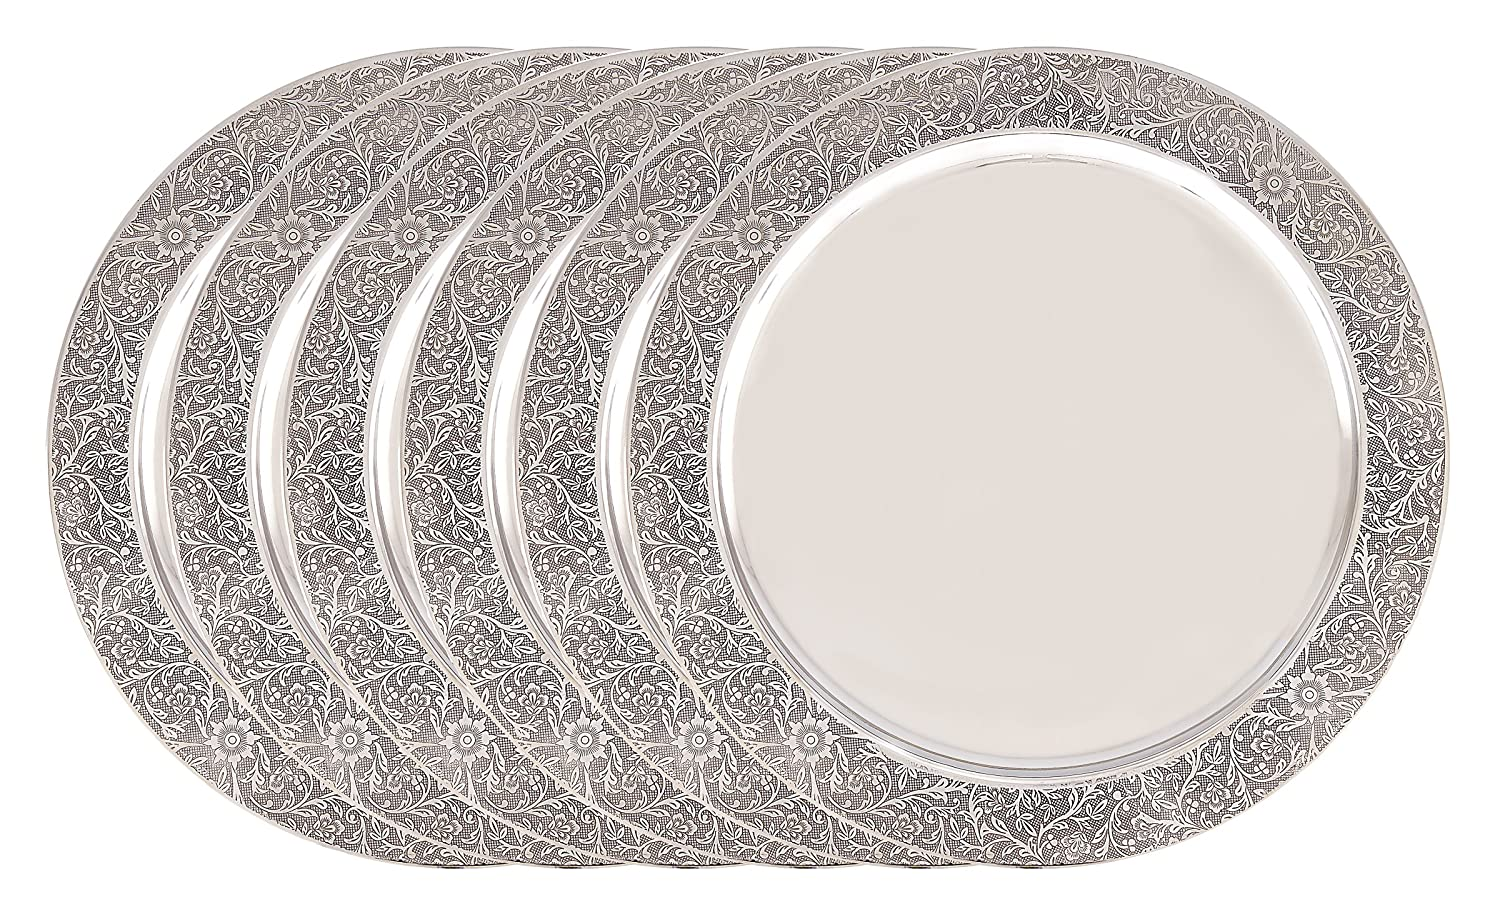 Etched Rim Shiny Stainless Steel Charger Plate Set of 6